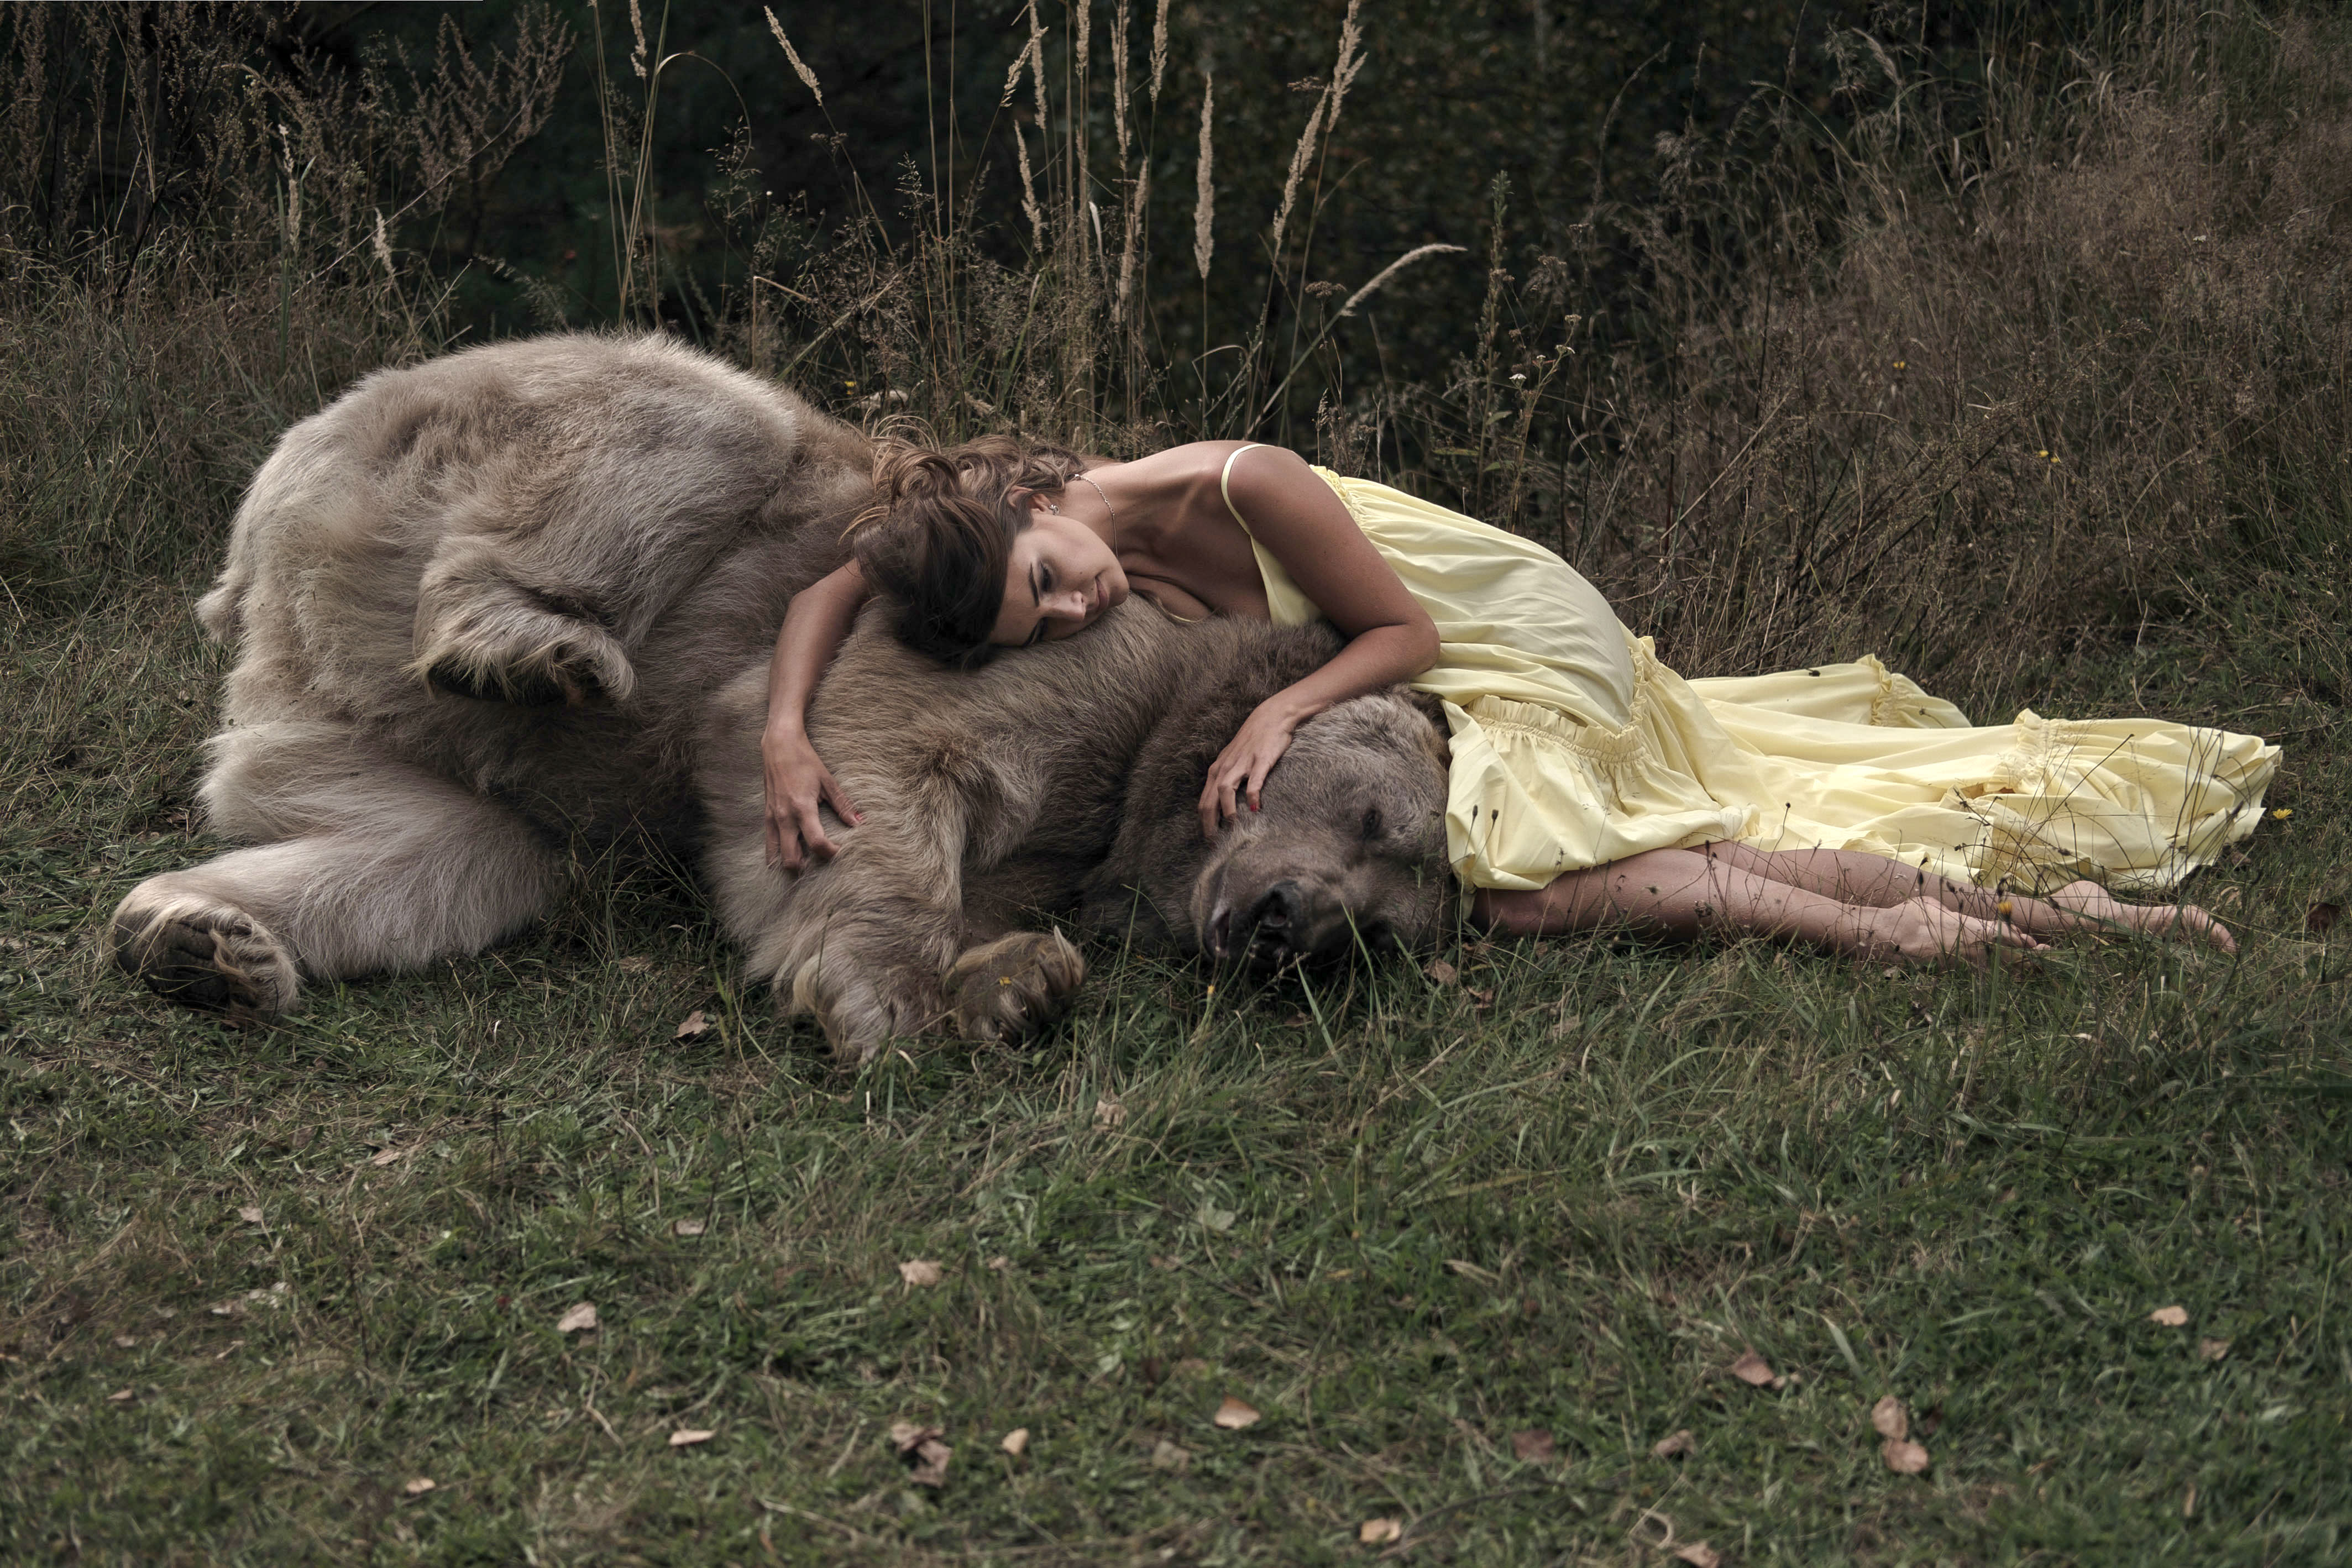 <p>Models even take naps with the often unpredictable creatures. (Photo: Olga Barantseva/Caters News) </p>